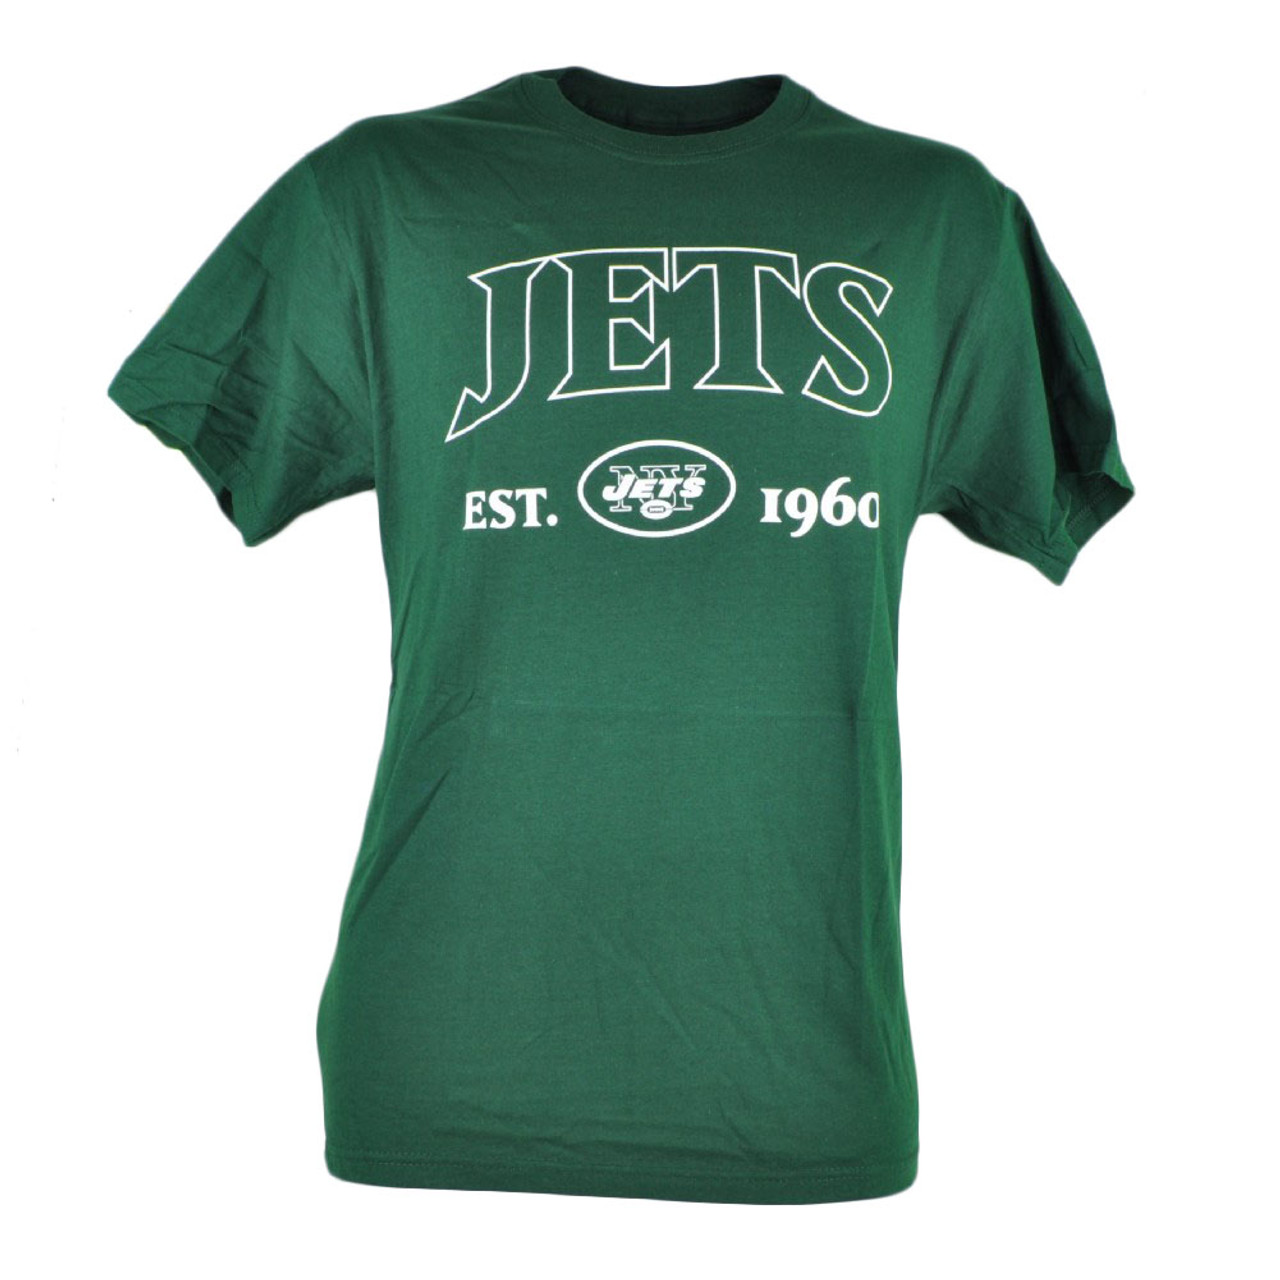 sports shoes 279d6 2aba0 NFL New York NY Jets Commissioner EST 1960 Football Mens Tshirt Tee Green